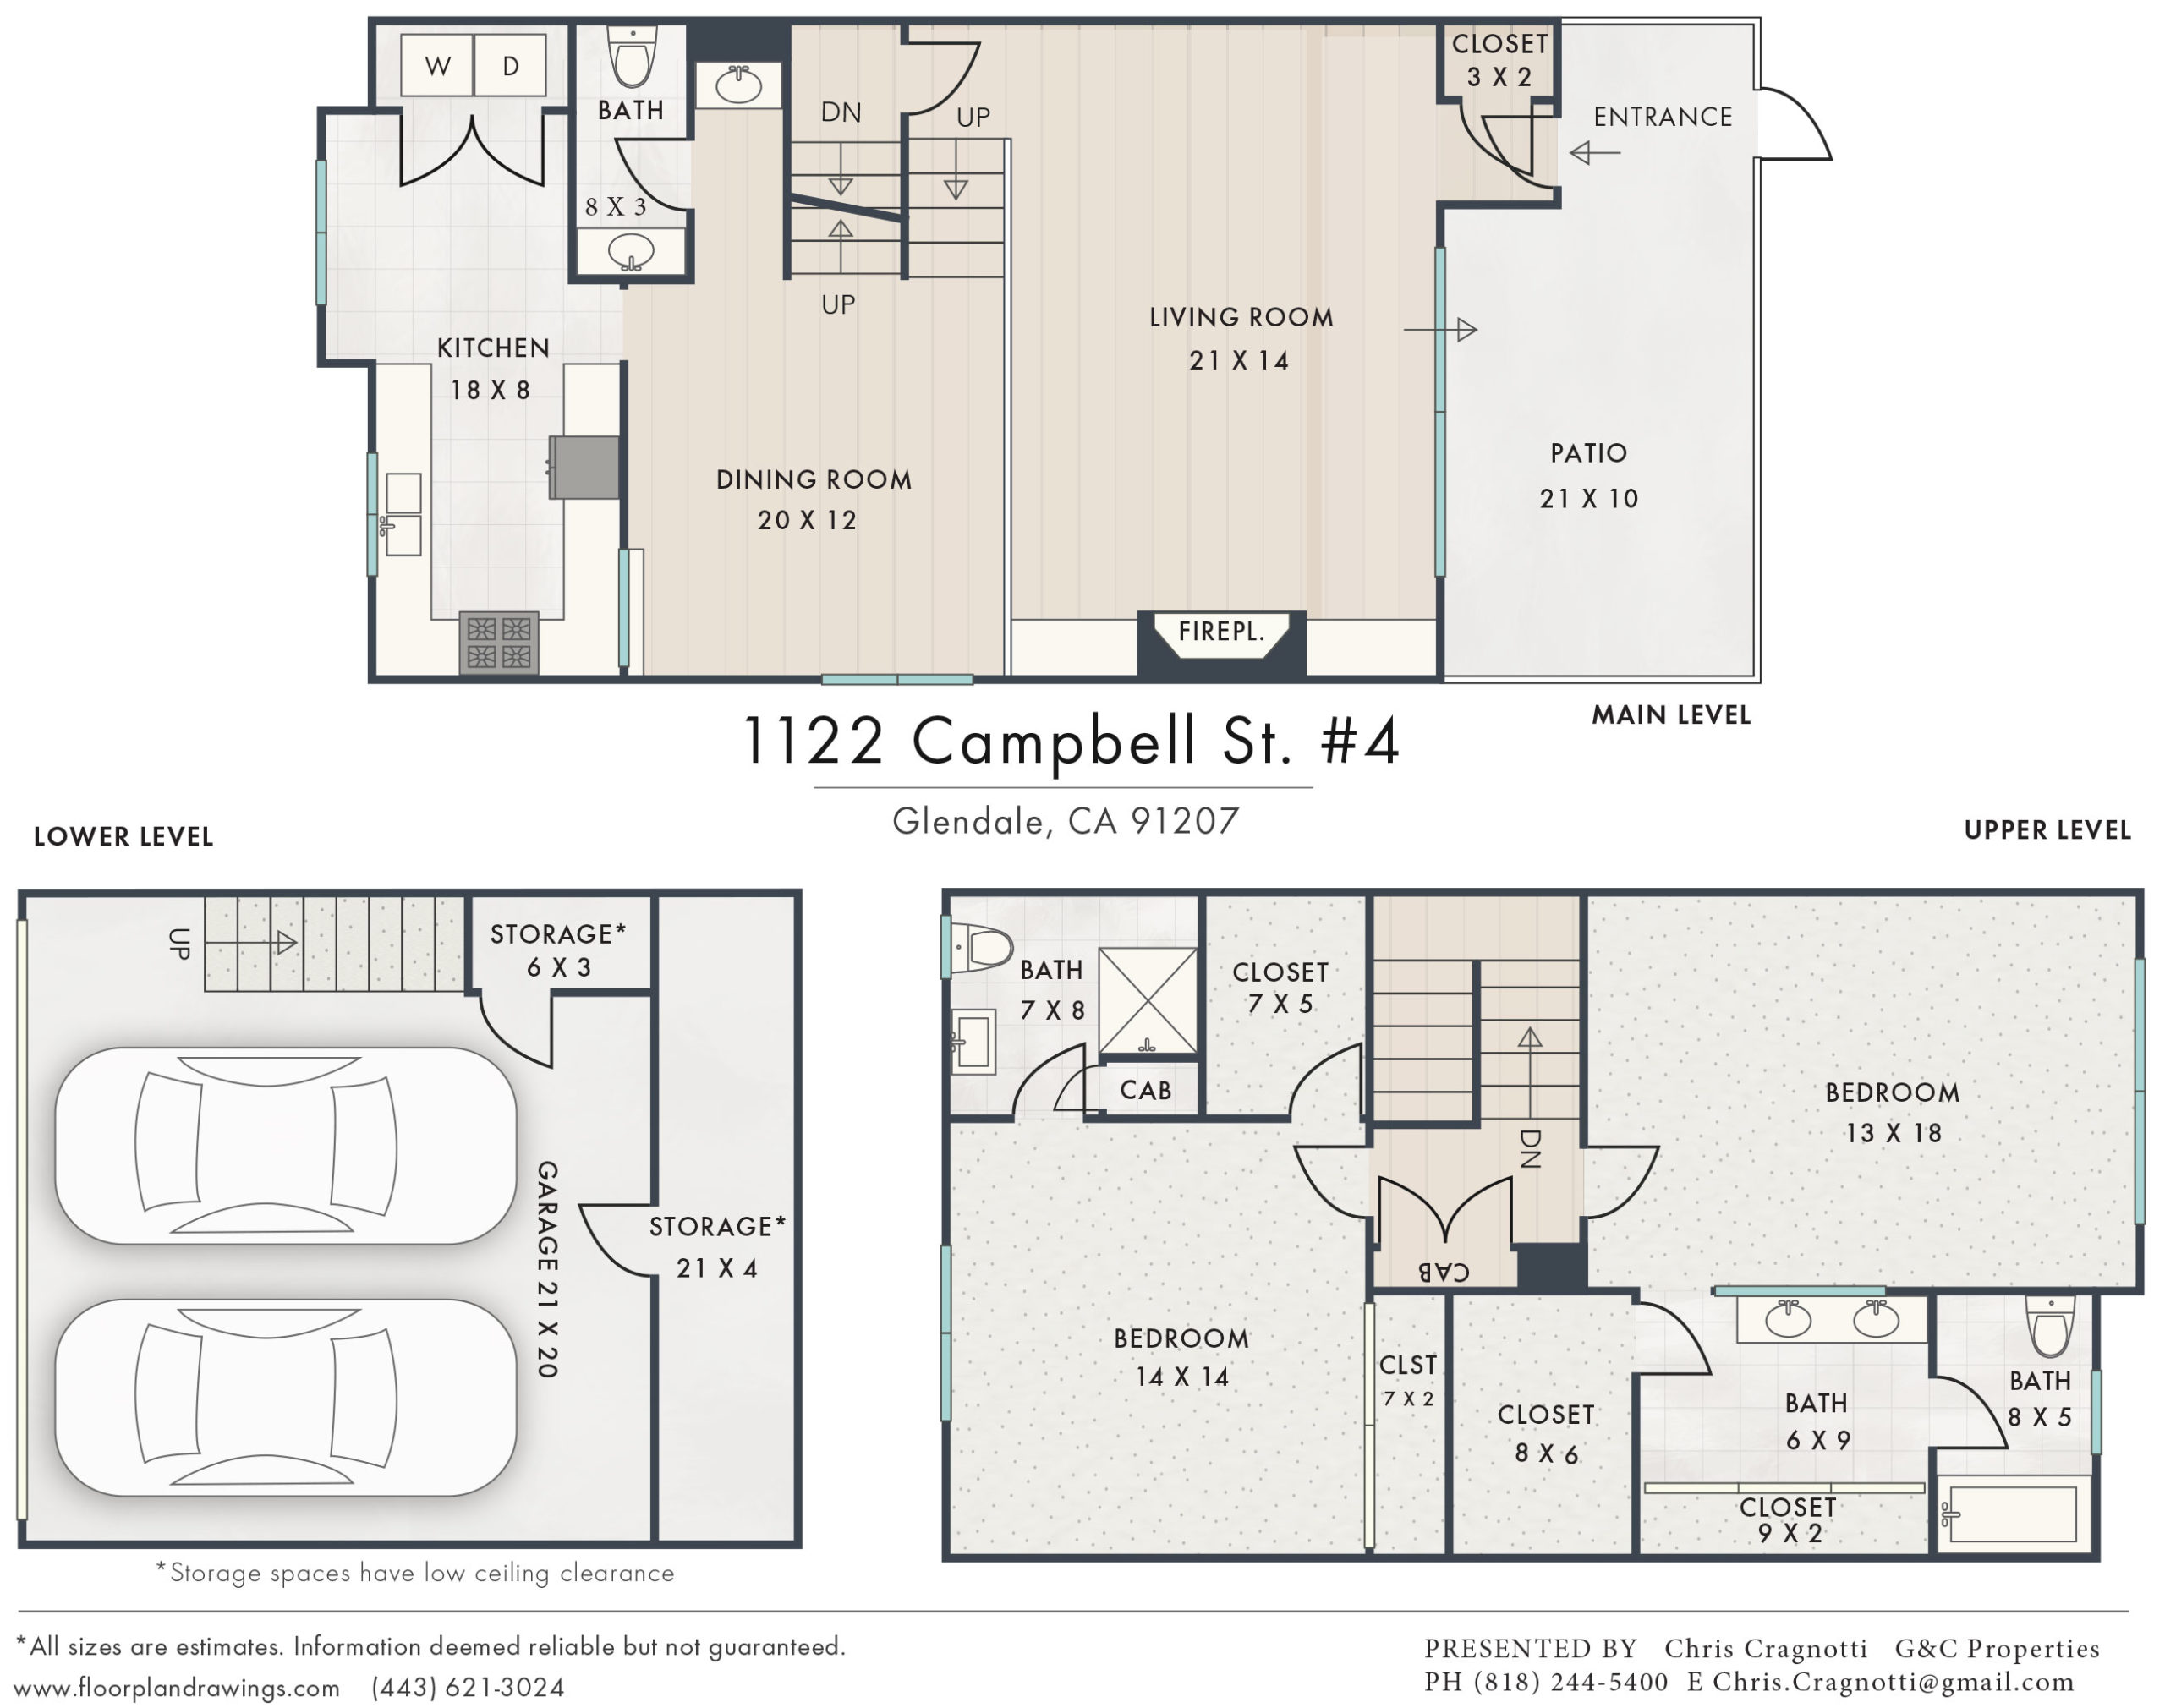 1122 Campbell St #4 Floorplan